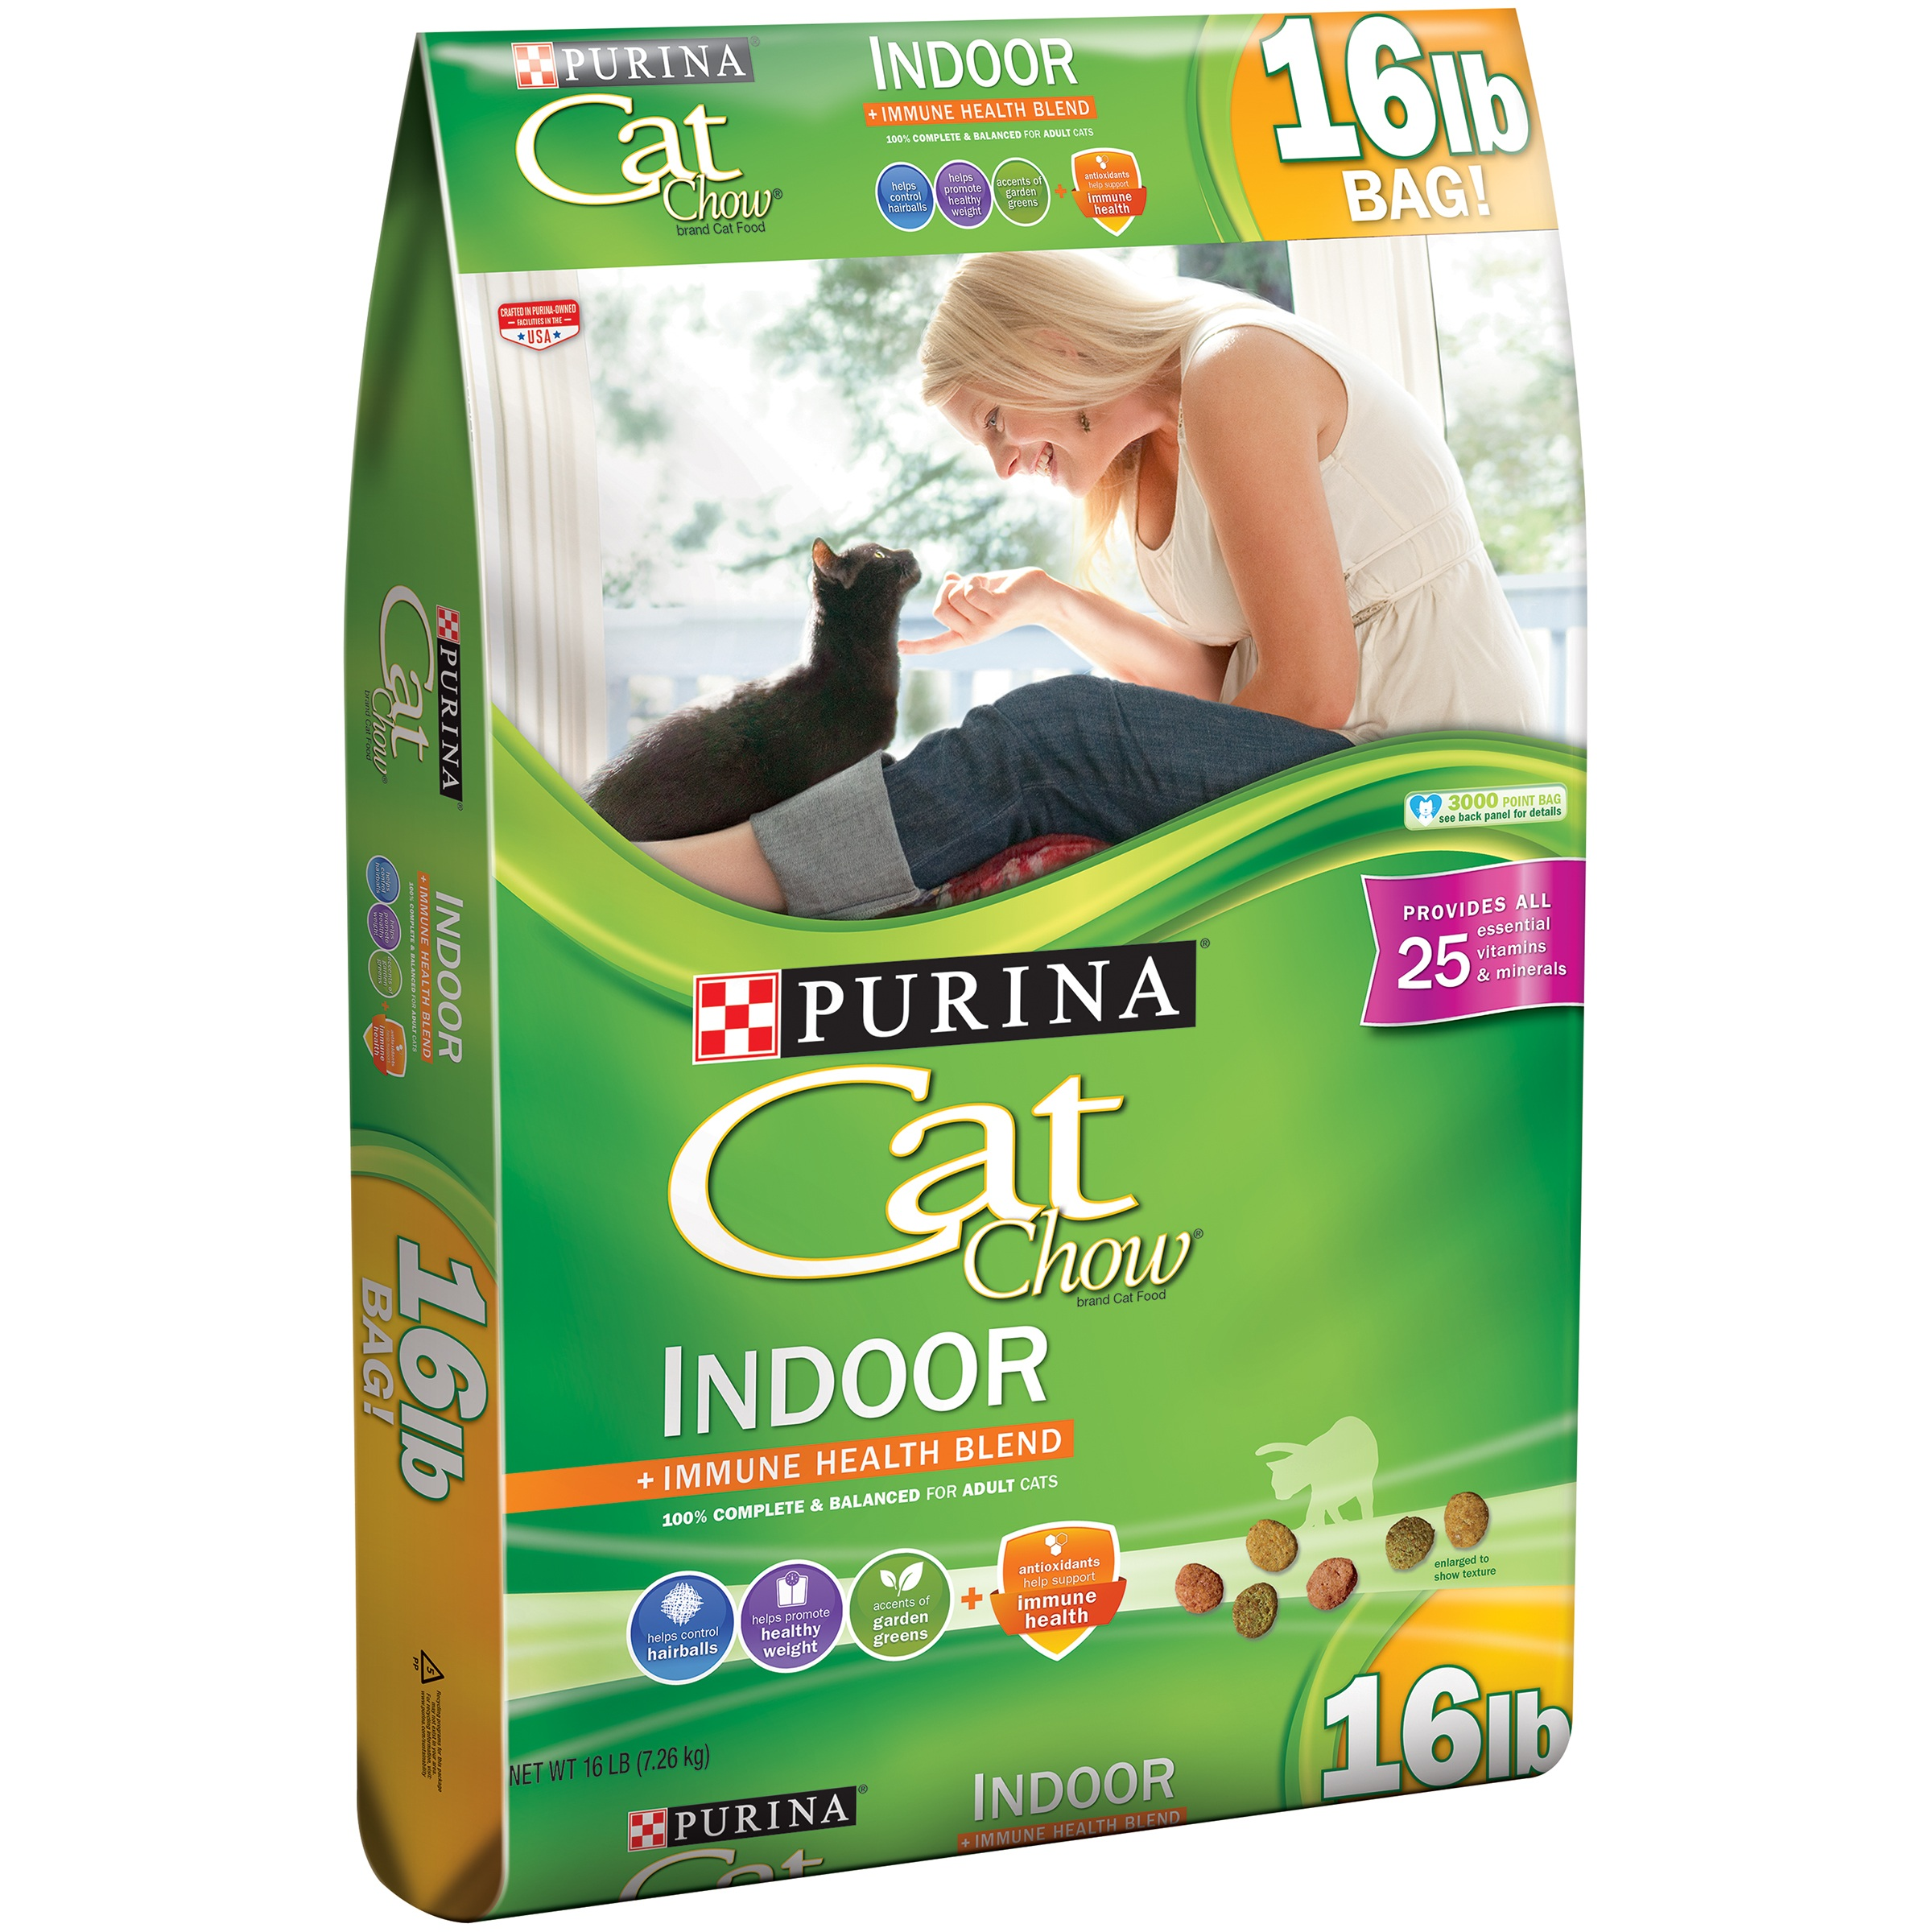 Purina Cat Chow Indoor Cat Food 16 lb. Bag